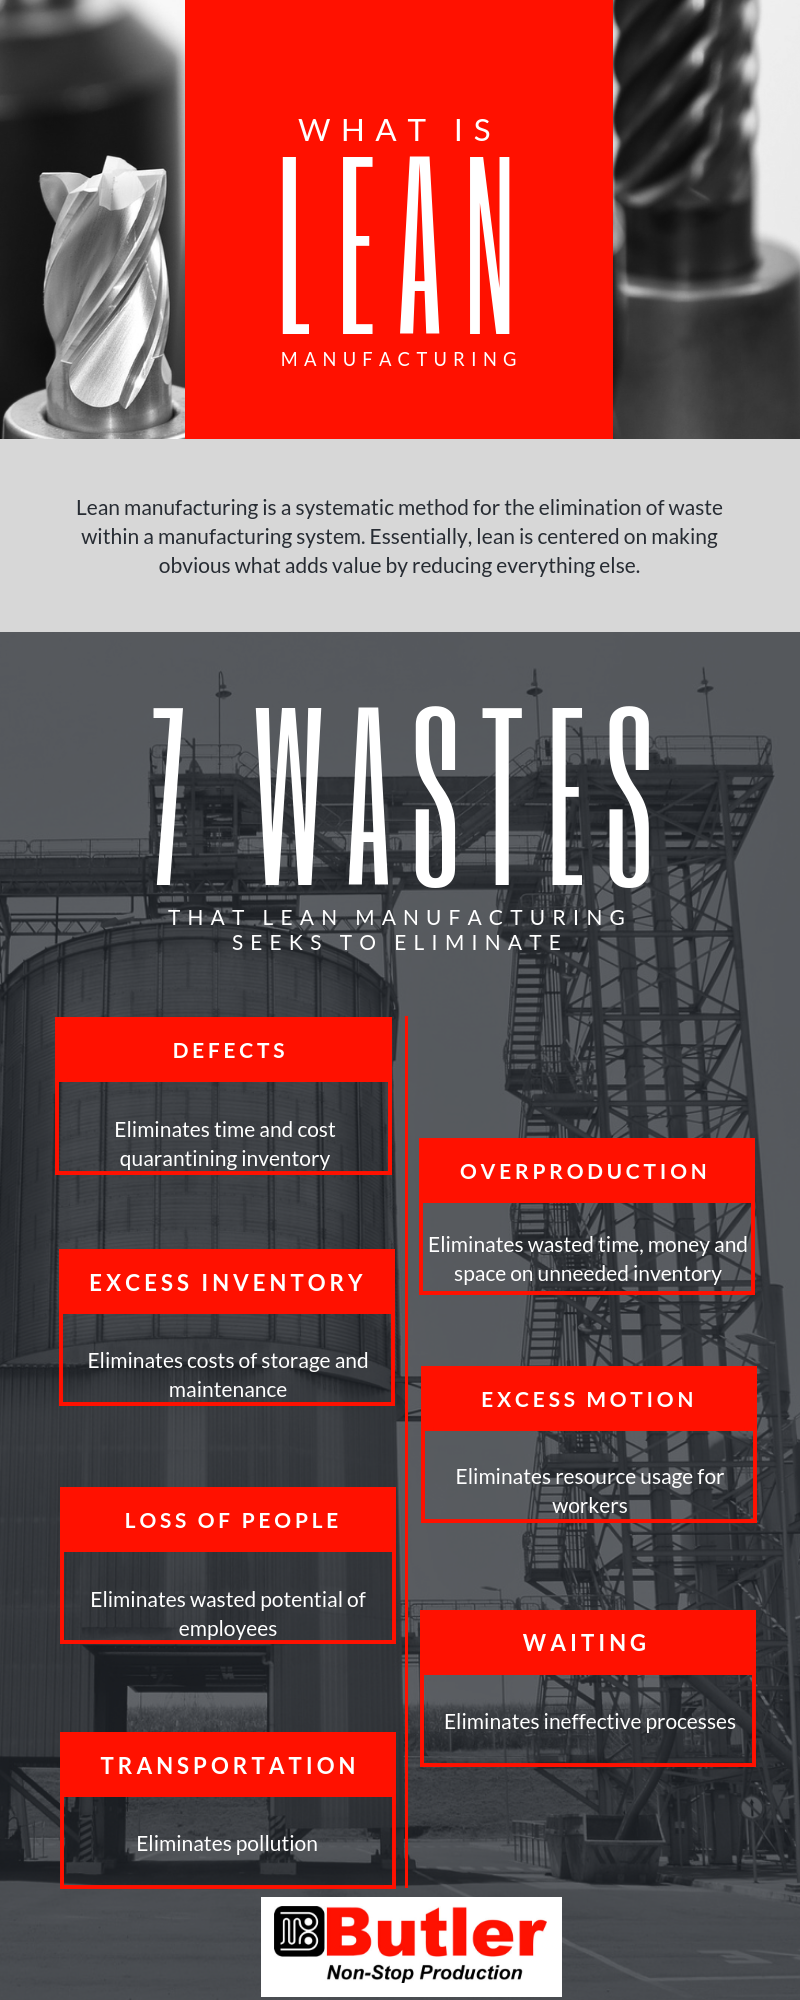 Eliminating these wastes has brought added value to our customers in many tangible ways.